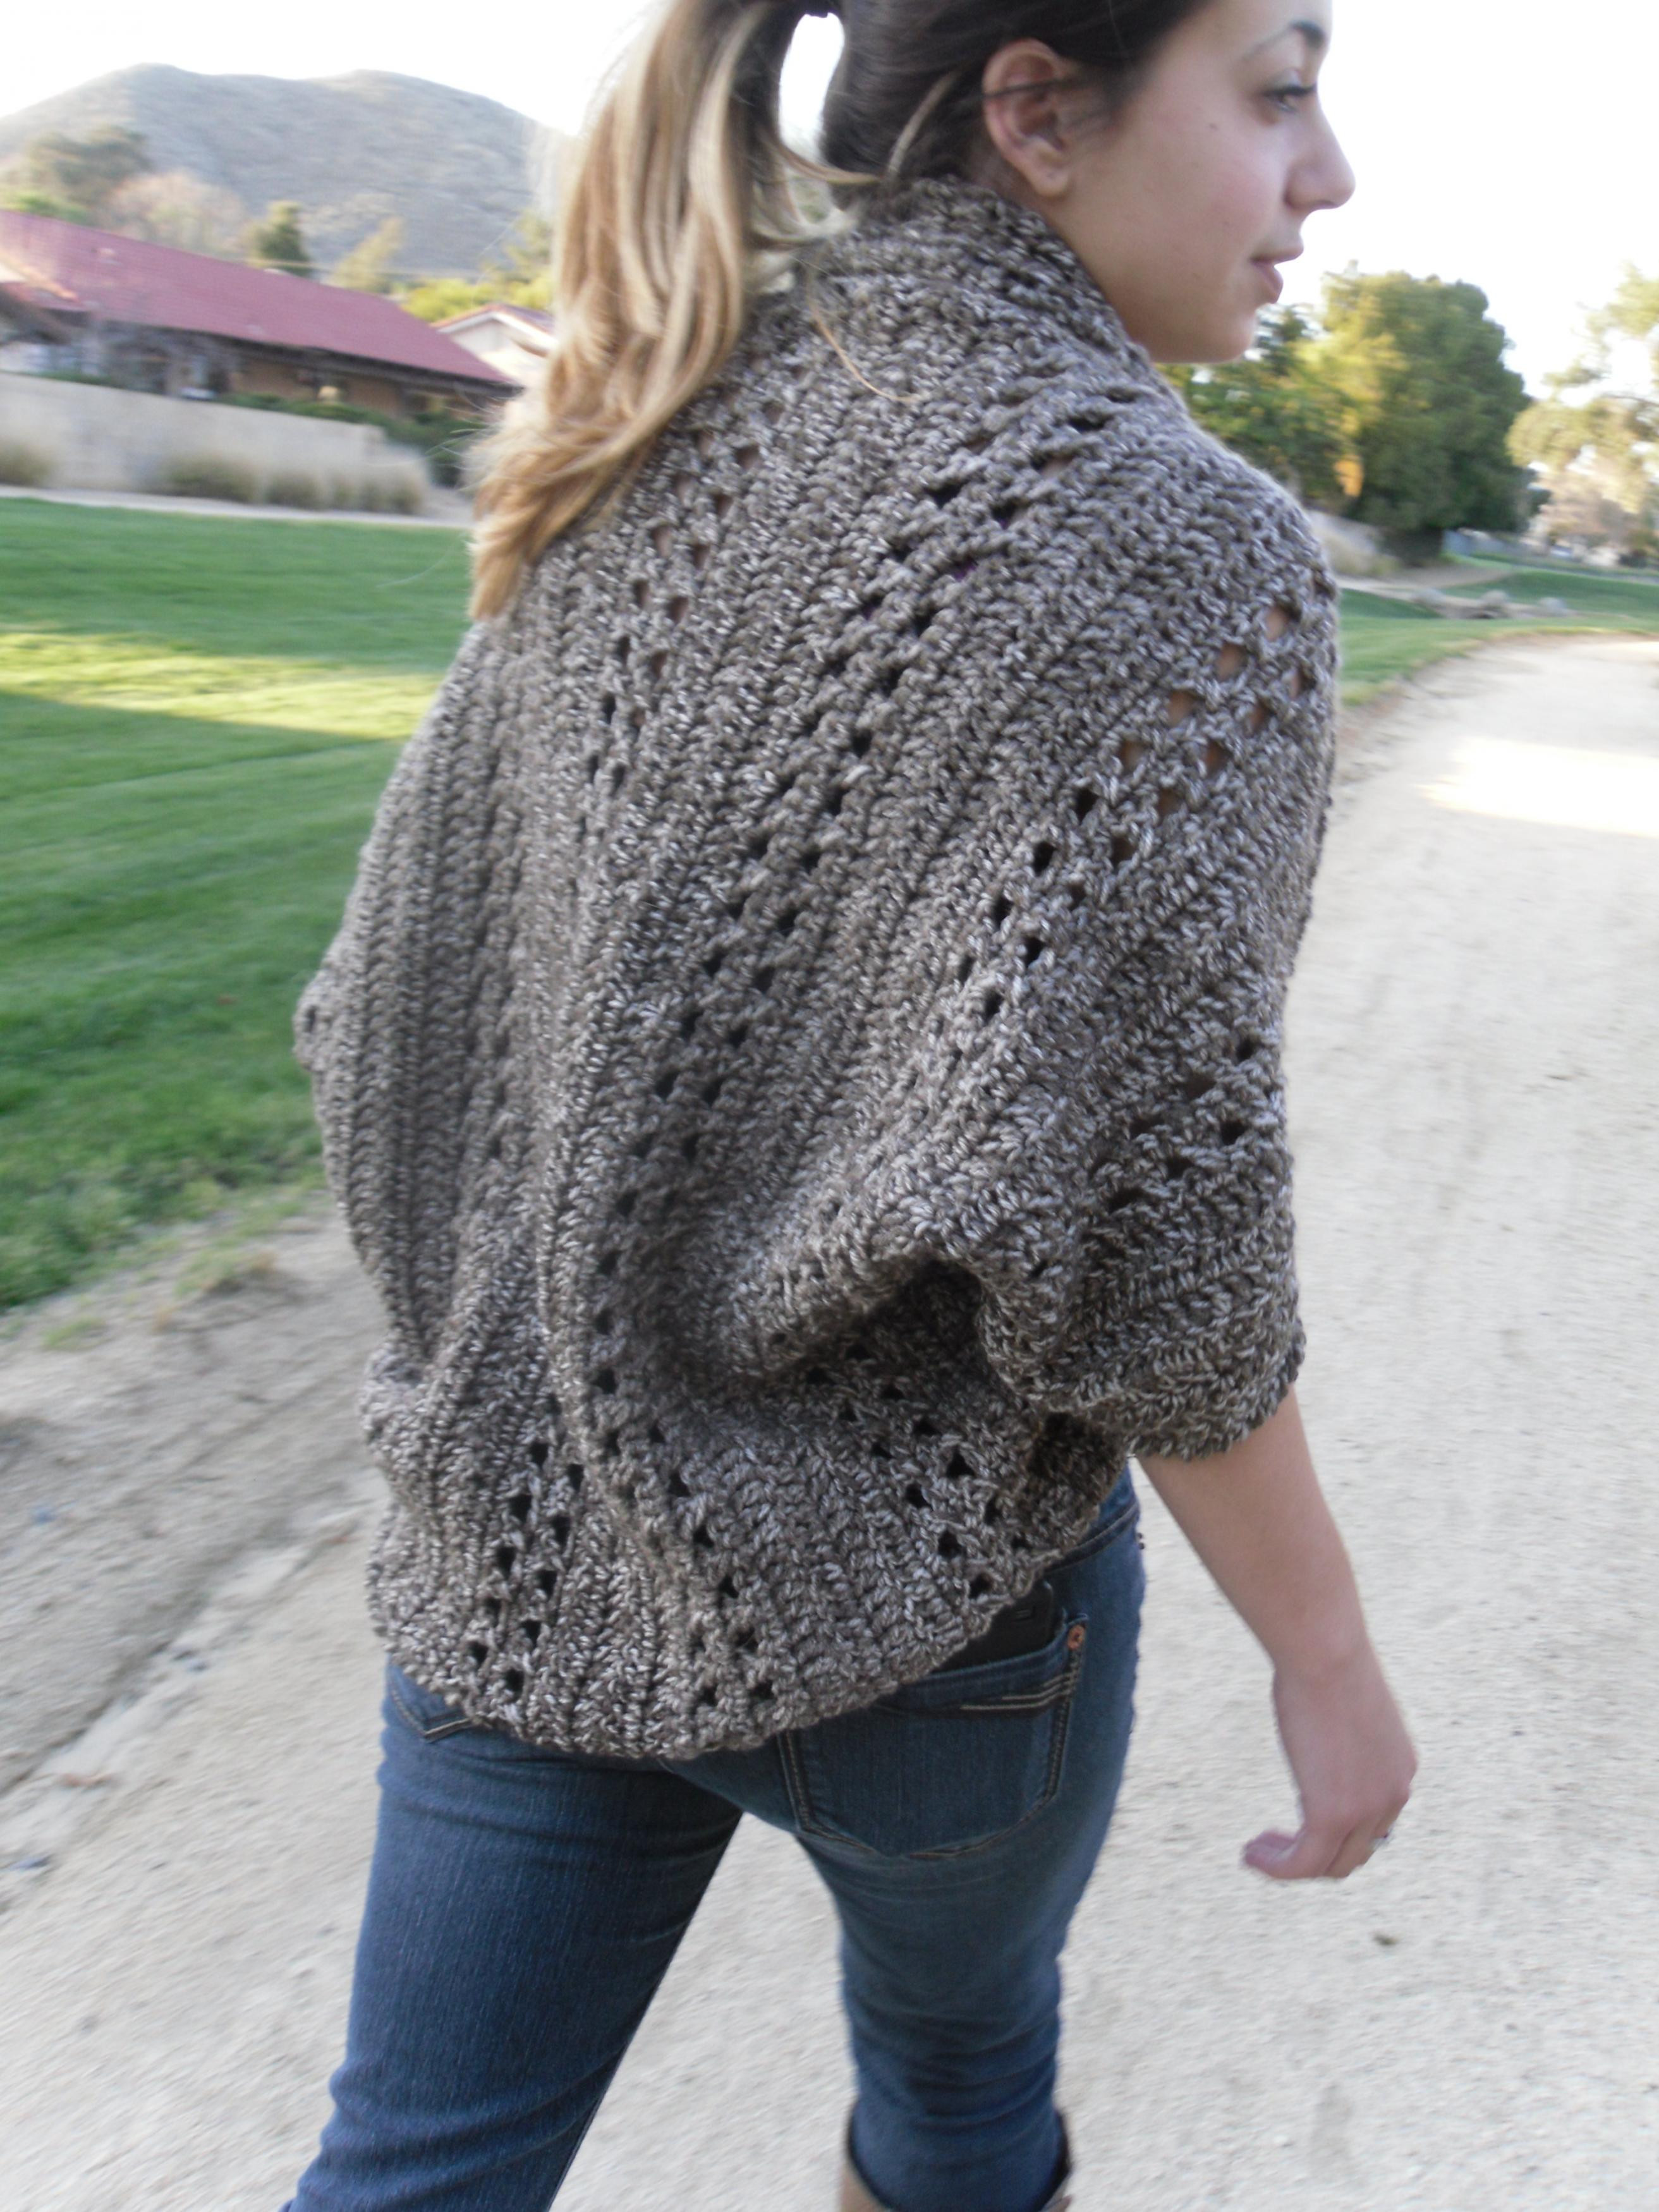 Sweater Crochet Patterns Best Of Sweater Crochet Patterns for Beginners Of Amazing 49 Pictures Sweater Crochet Patterns